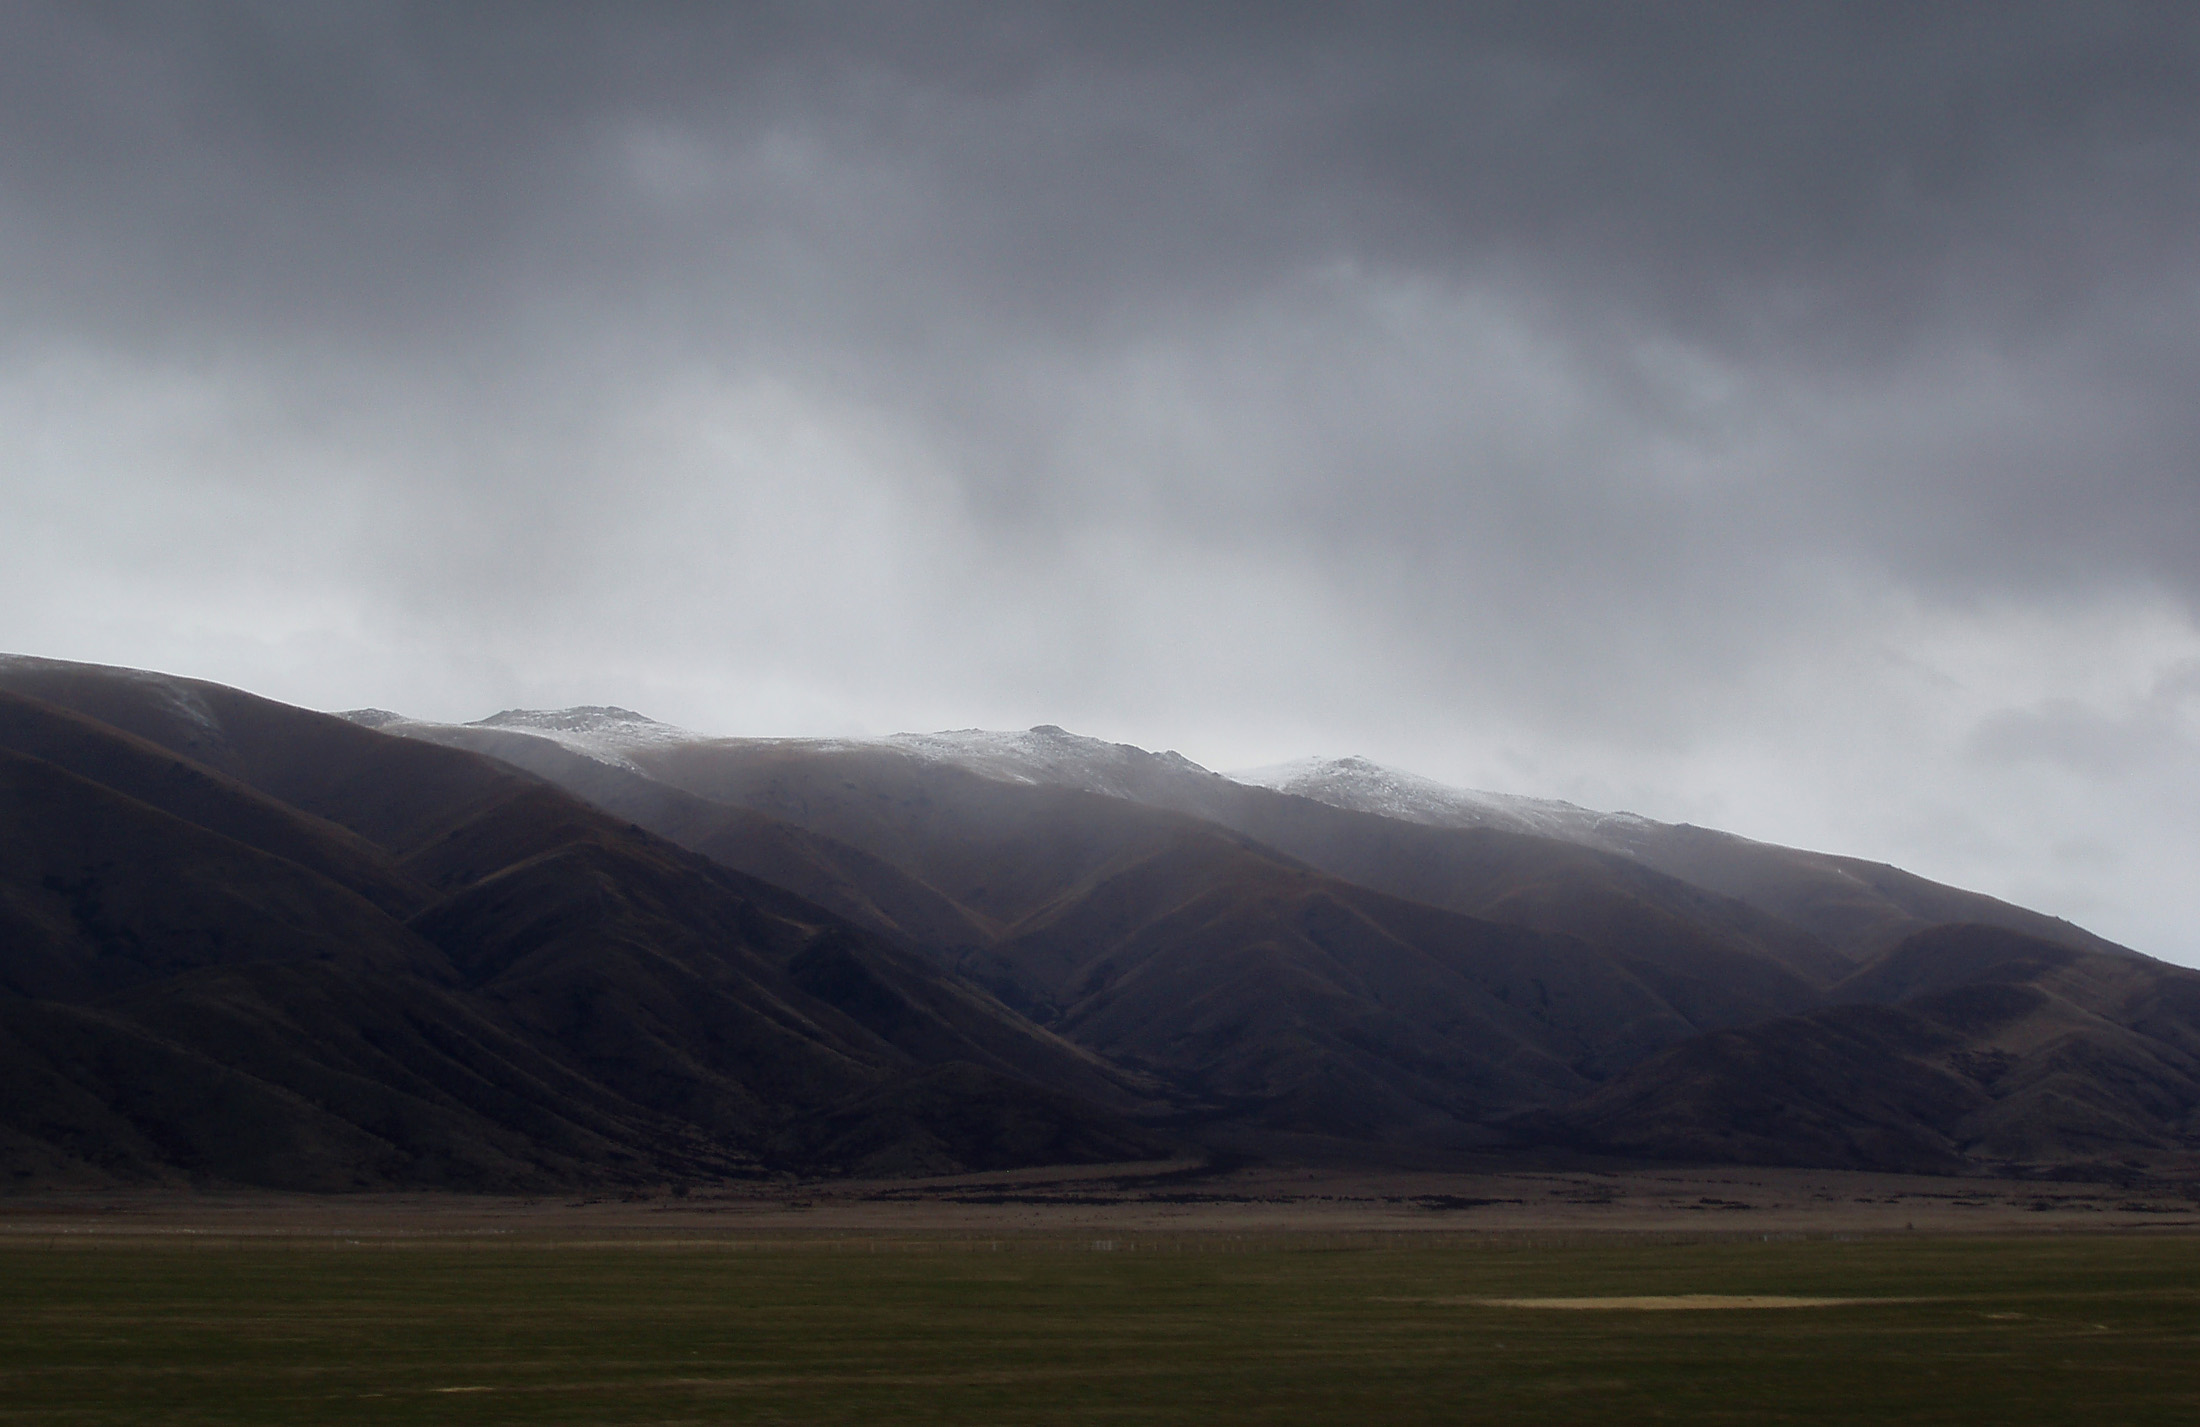 a dark stormy day in the mountains between tekapo and queenstown